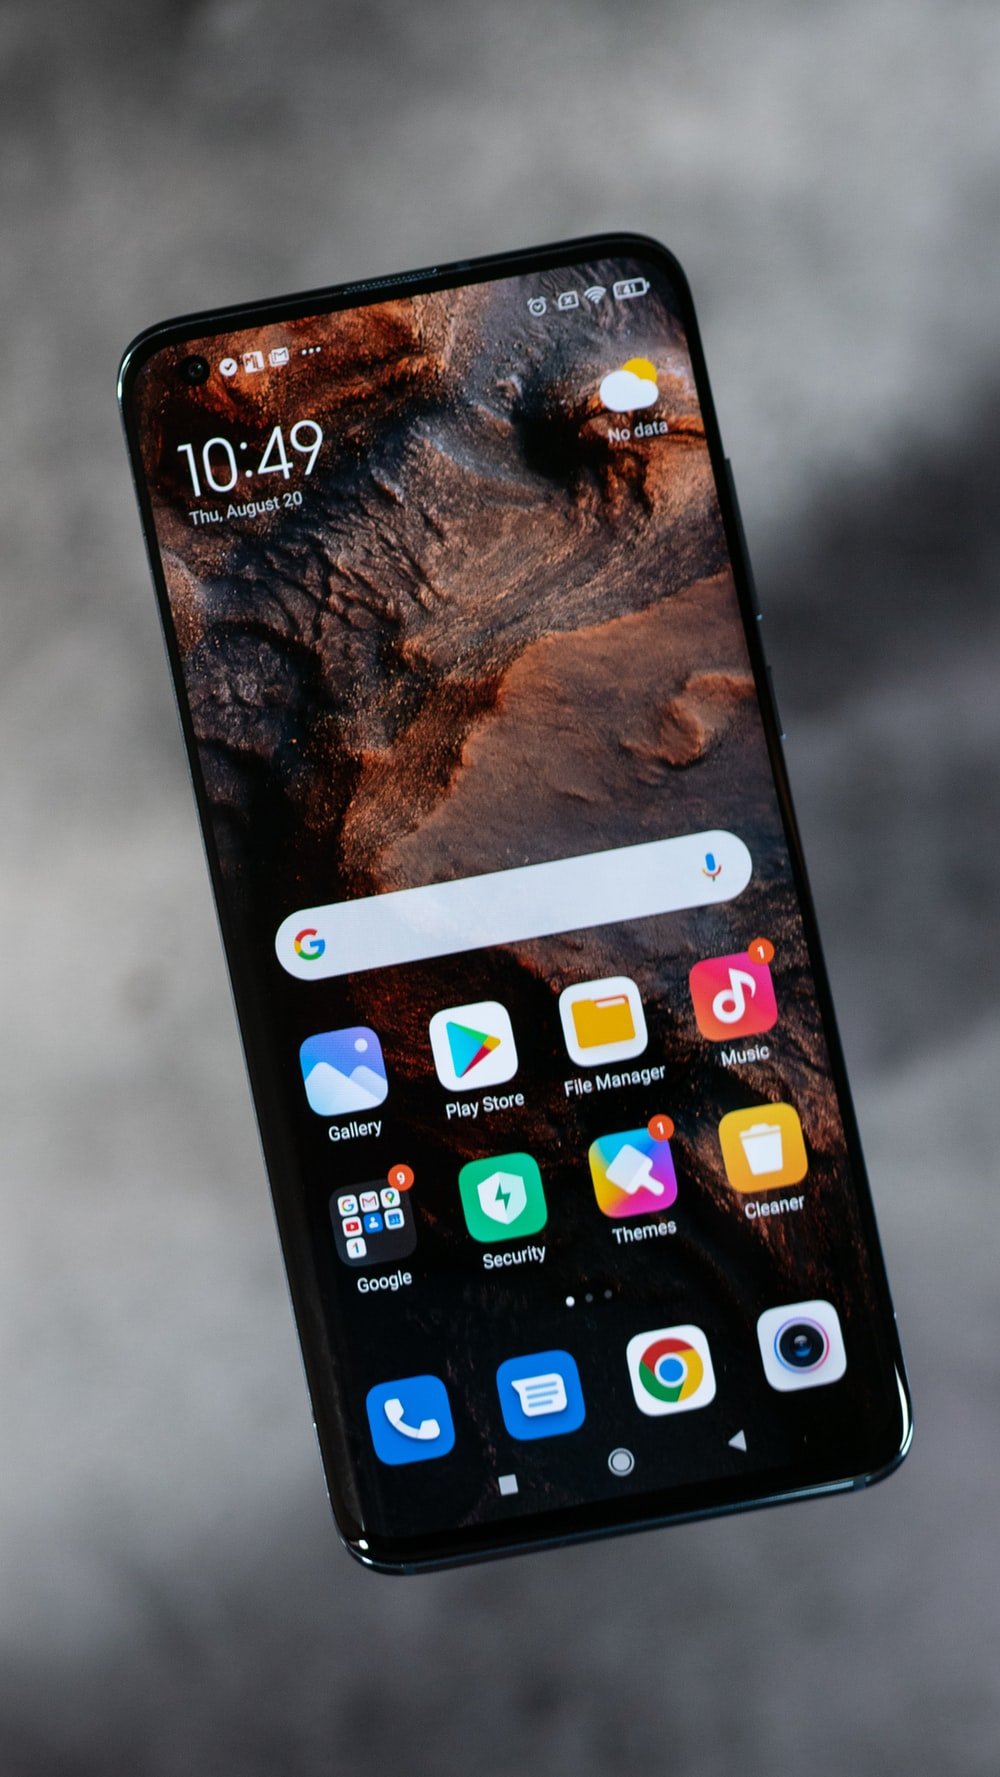 iphone screen showing icons with icons